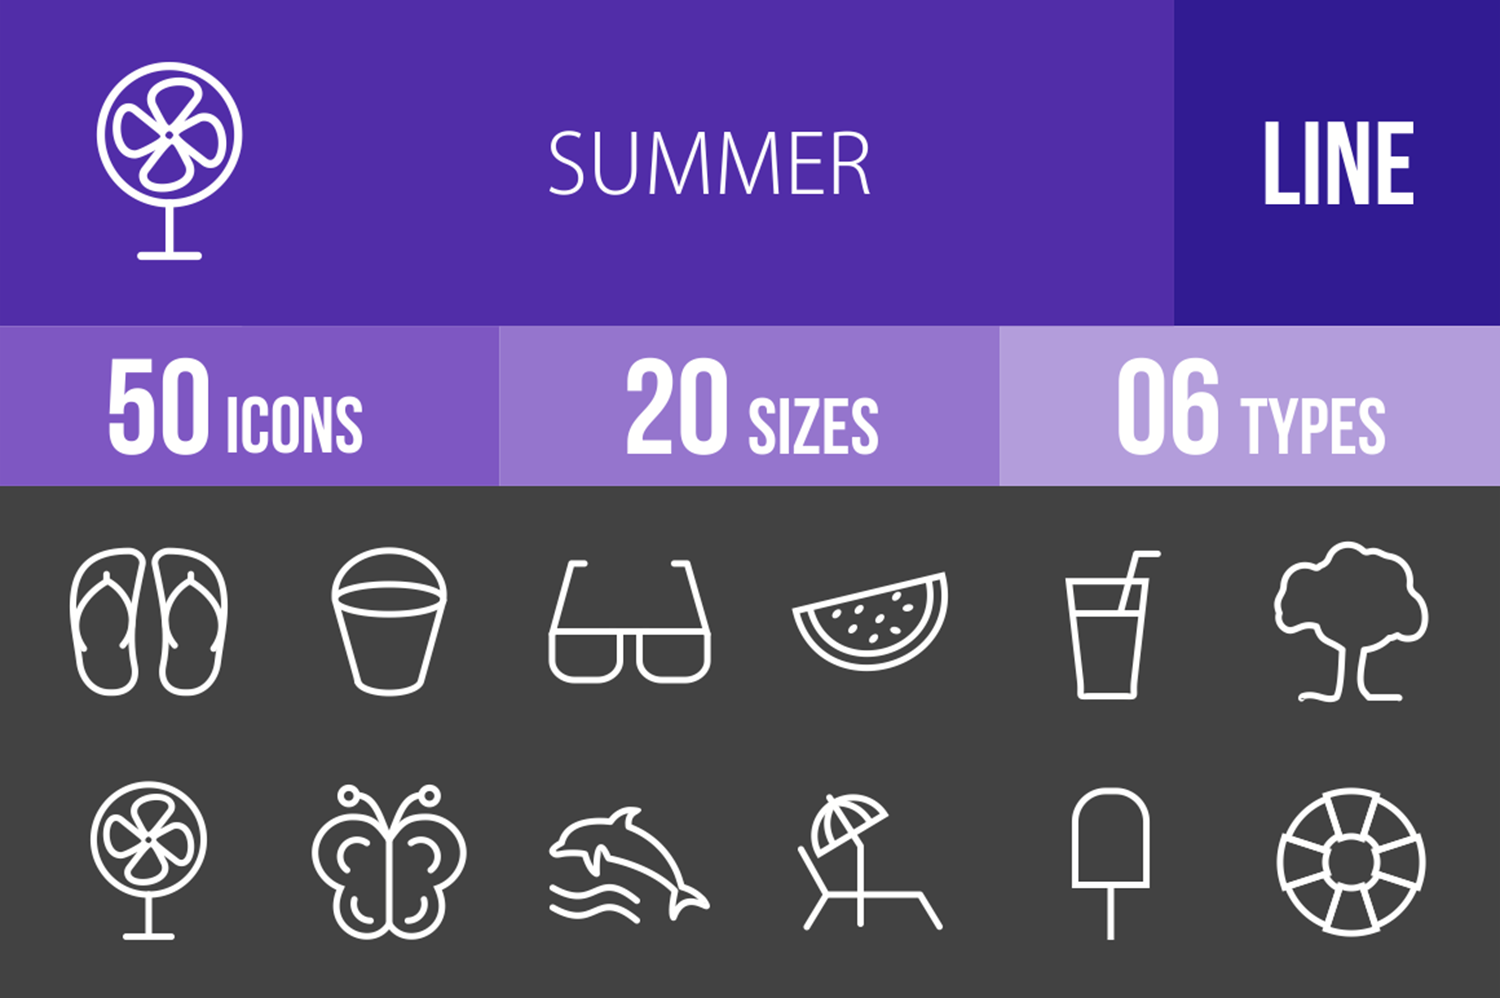 50 Summer Line Inverted Icons example image 1